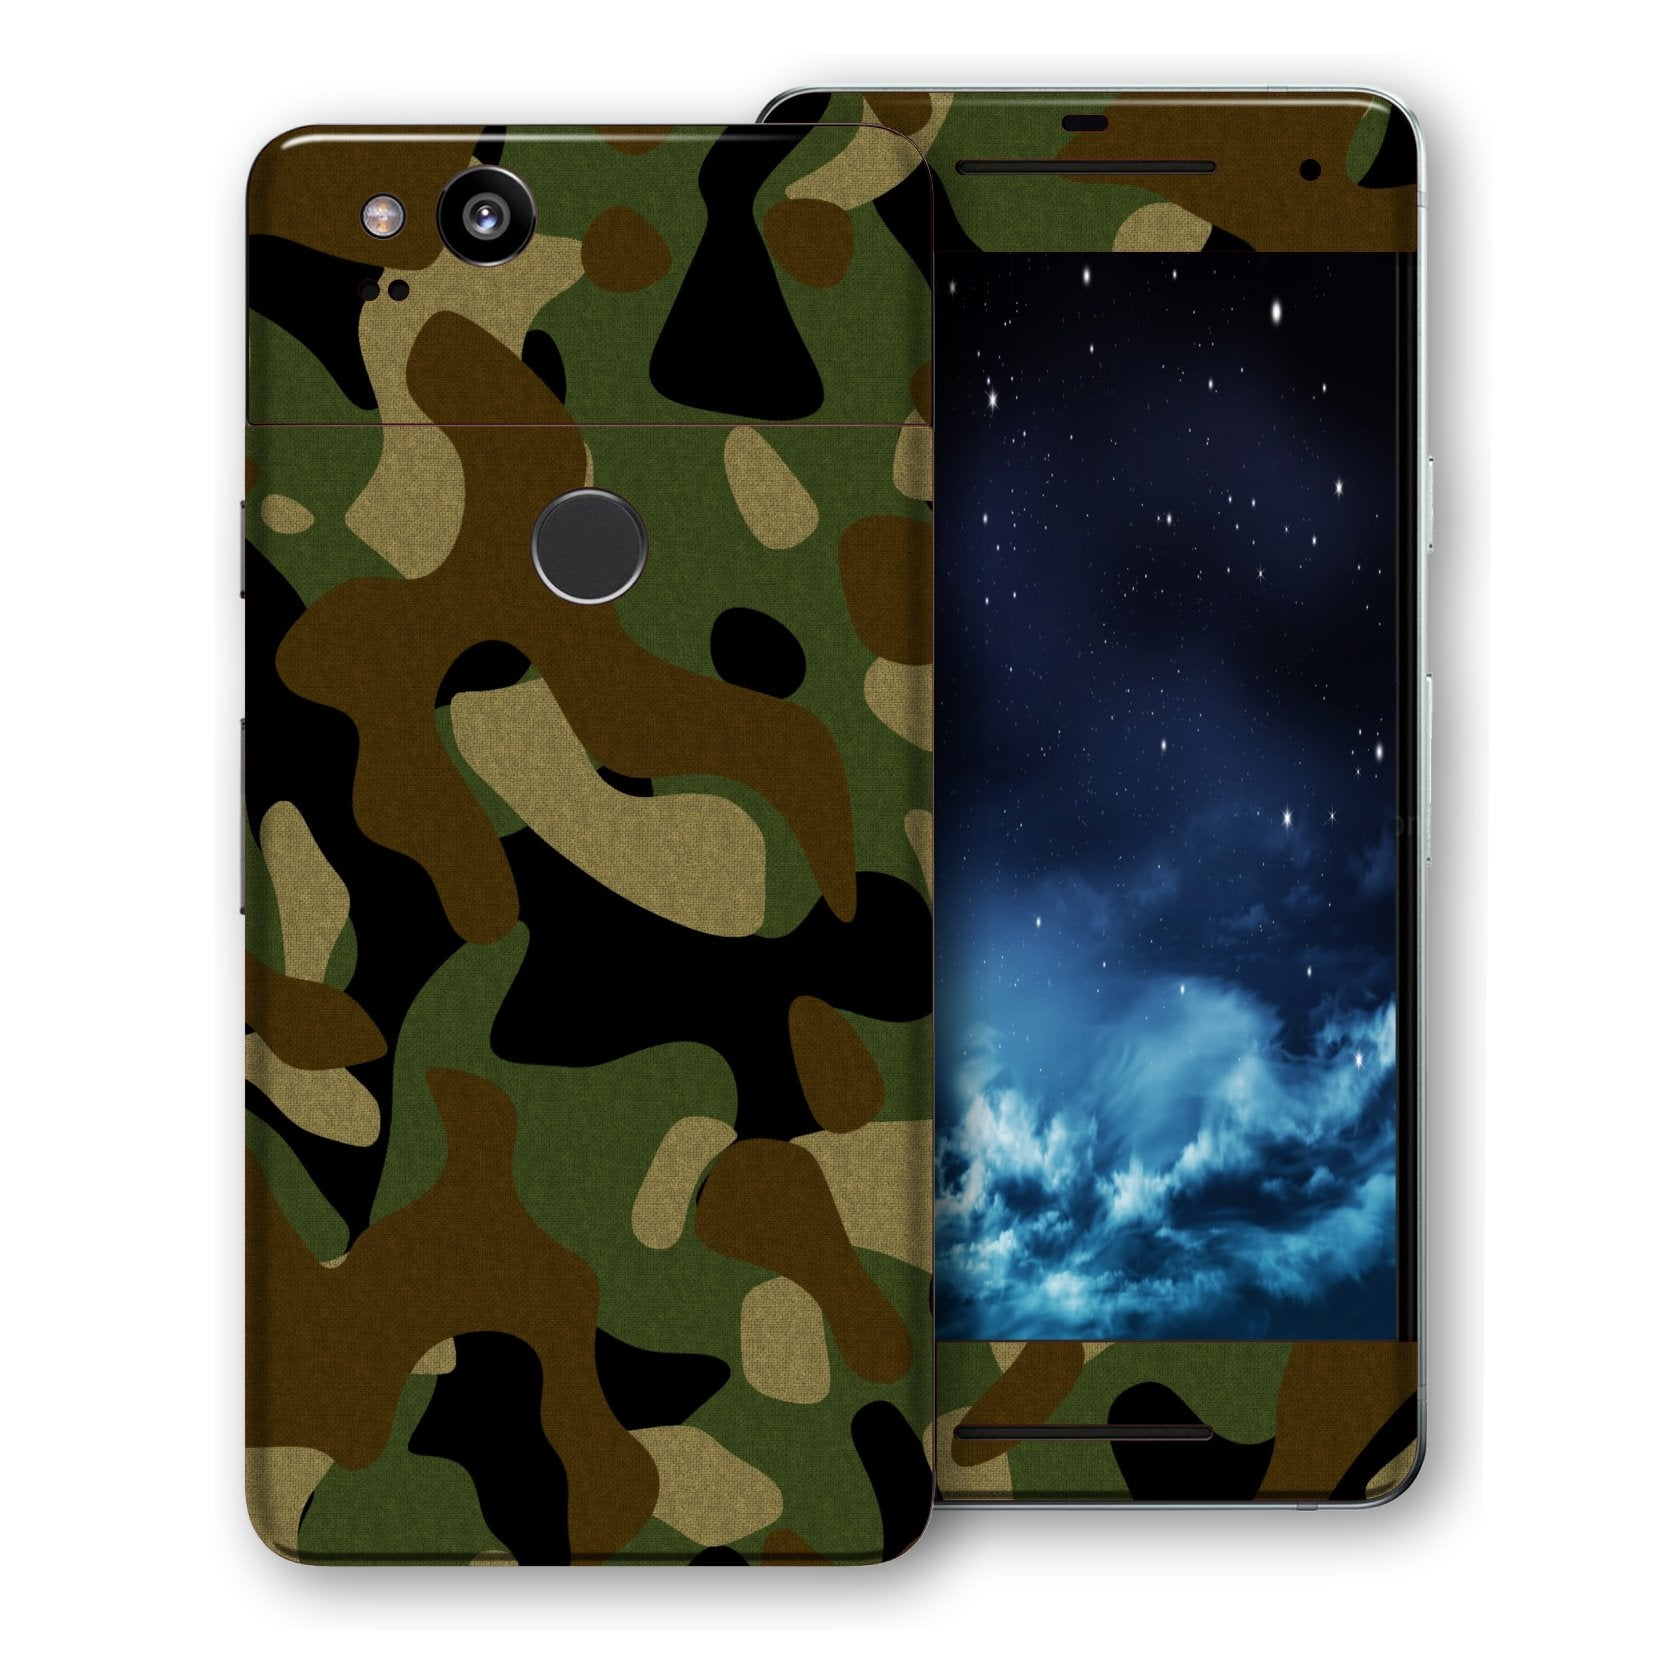 Google Pixel 2 Print Custom Signature Camouflage Classic Skin Wrap Decal by EasySkinz